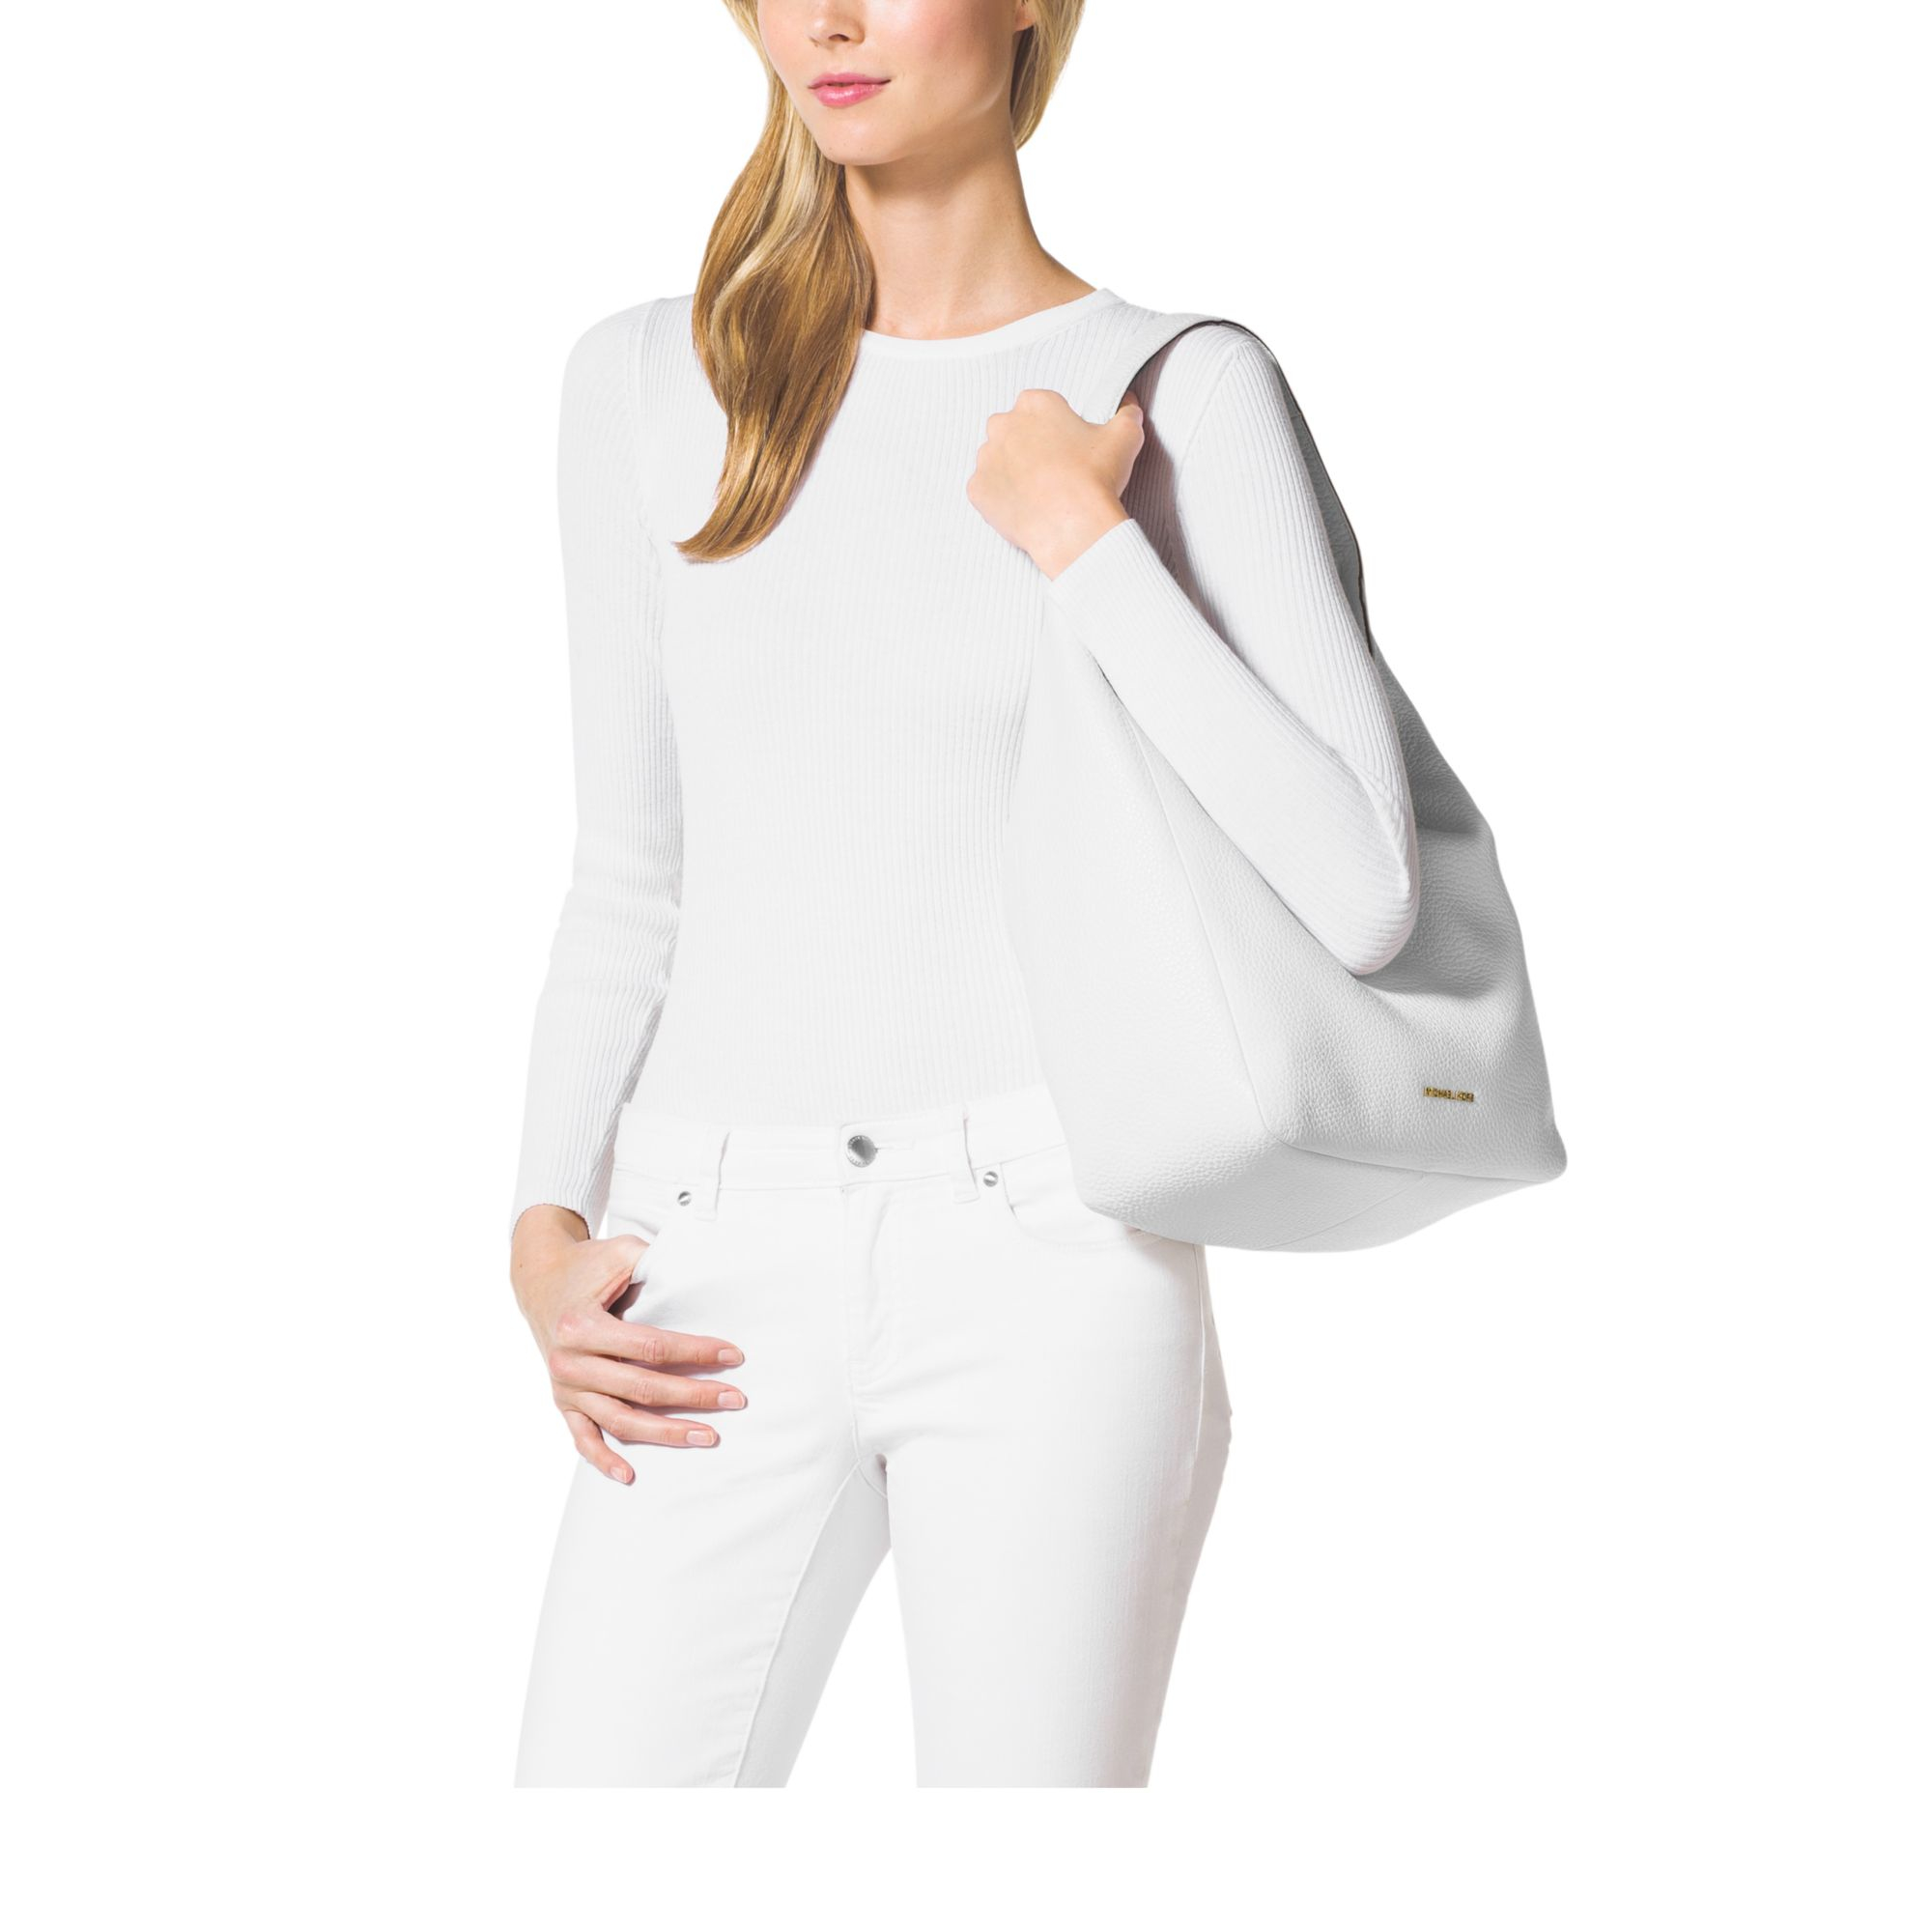 2aefc30340a0 Michael kors Lena Large Leather Shoulder Bag in White Lyst ...